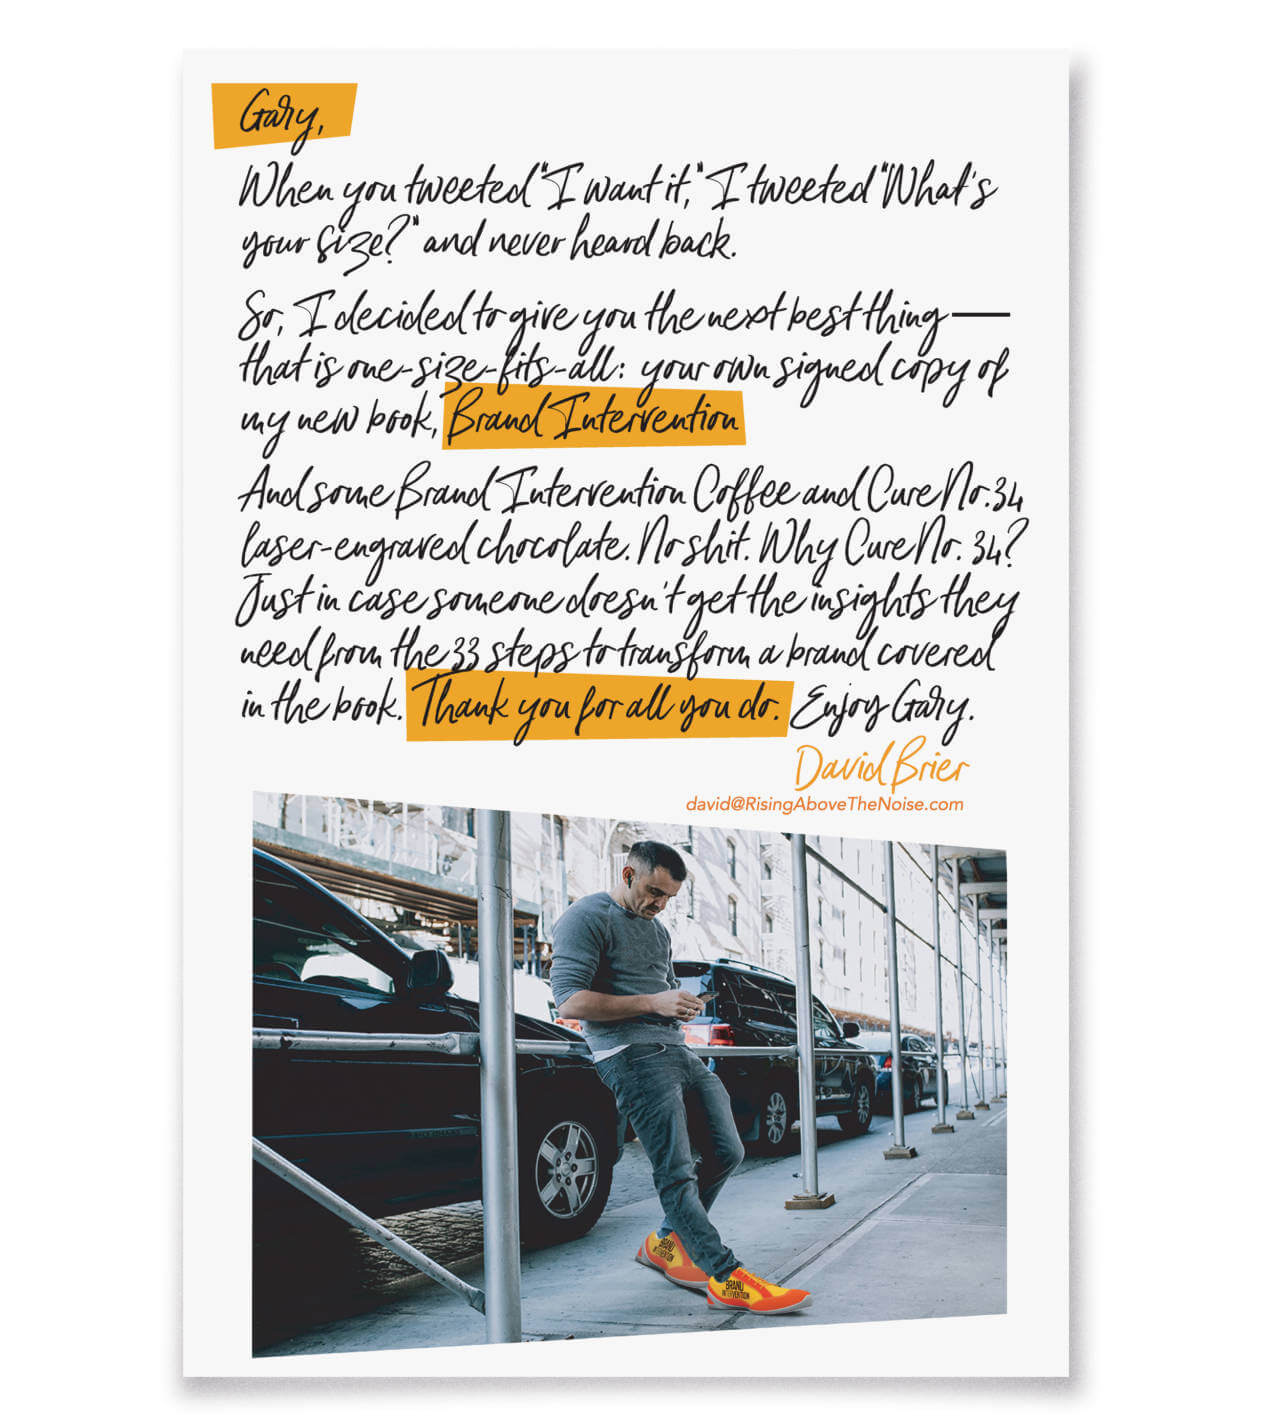 Gary Vee Letter and his Sneaker Box from David Brier